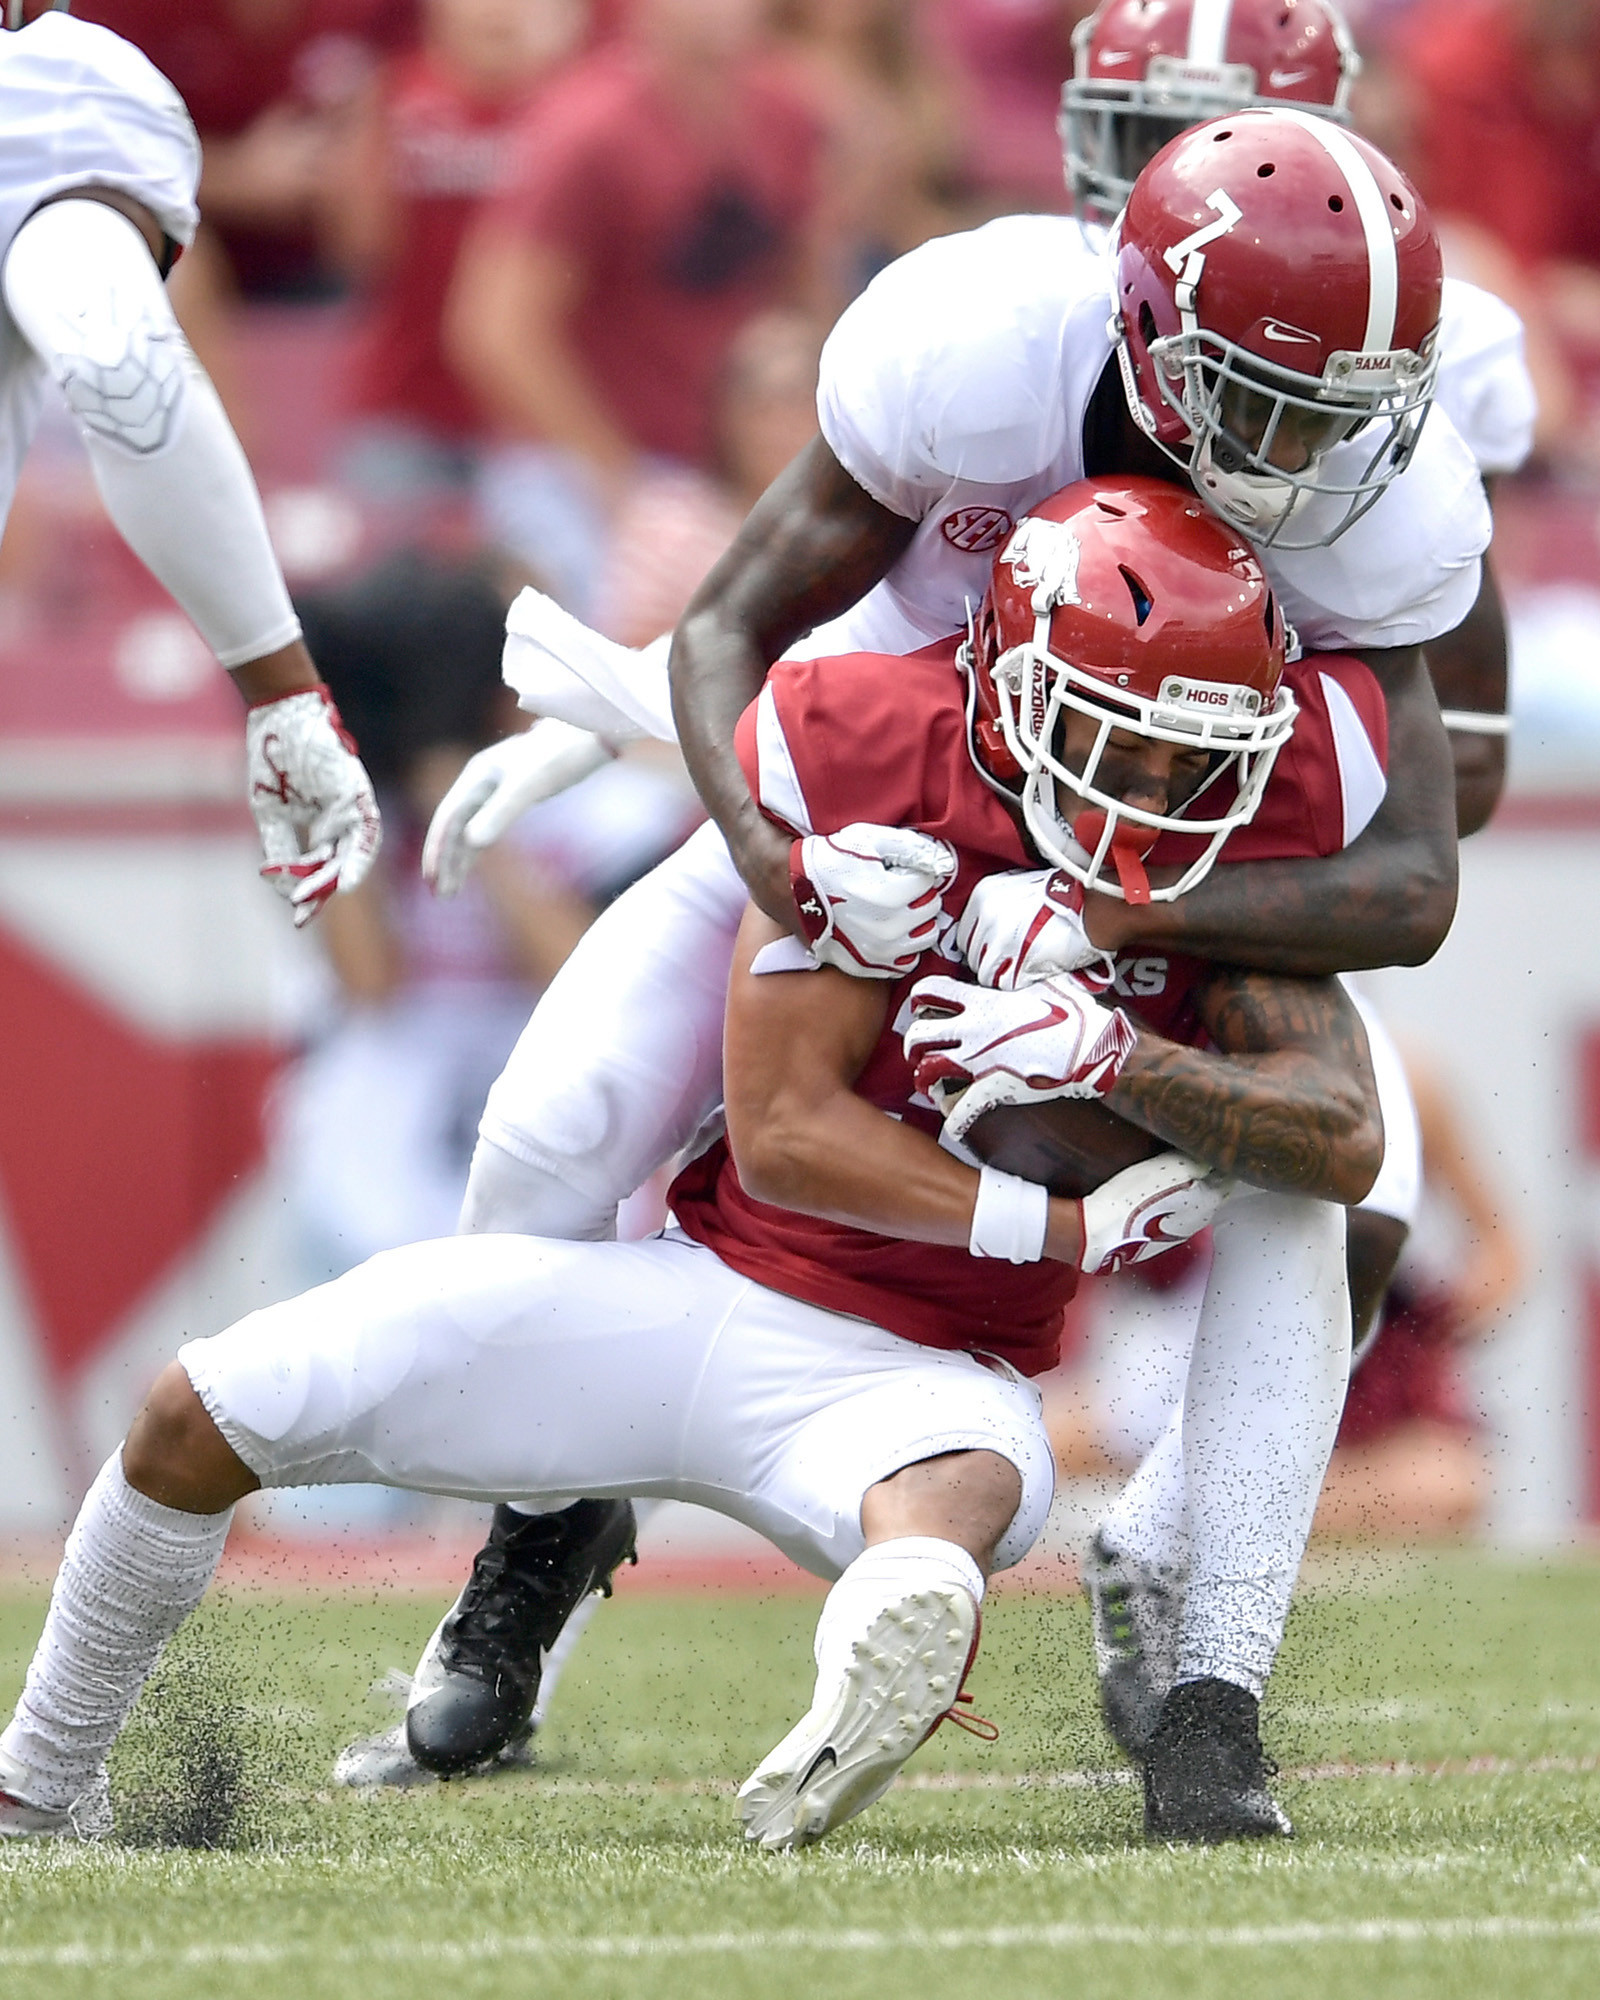 Alabama Crimson Tide defensive back Trevon Diggs (7) with a tackle during the first half of the NCAA football game against the Arkansas Razorbacks at Razorback Stadium on Oct. 6, 2018, in Fayetteville, Ark. Alabama defeated Arkansas 65-31. (Photo by Lee Walls)